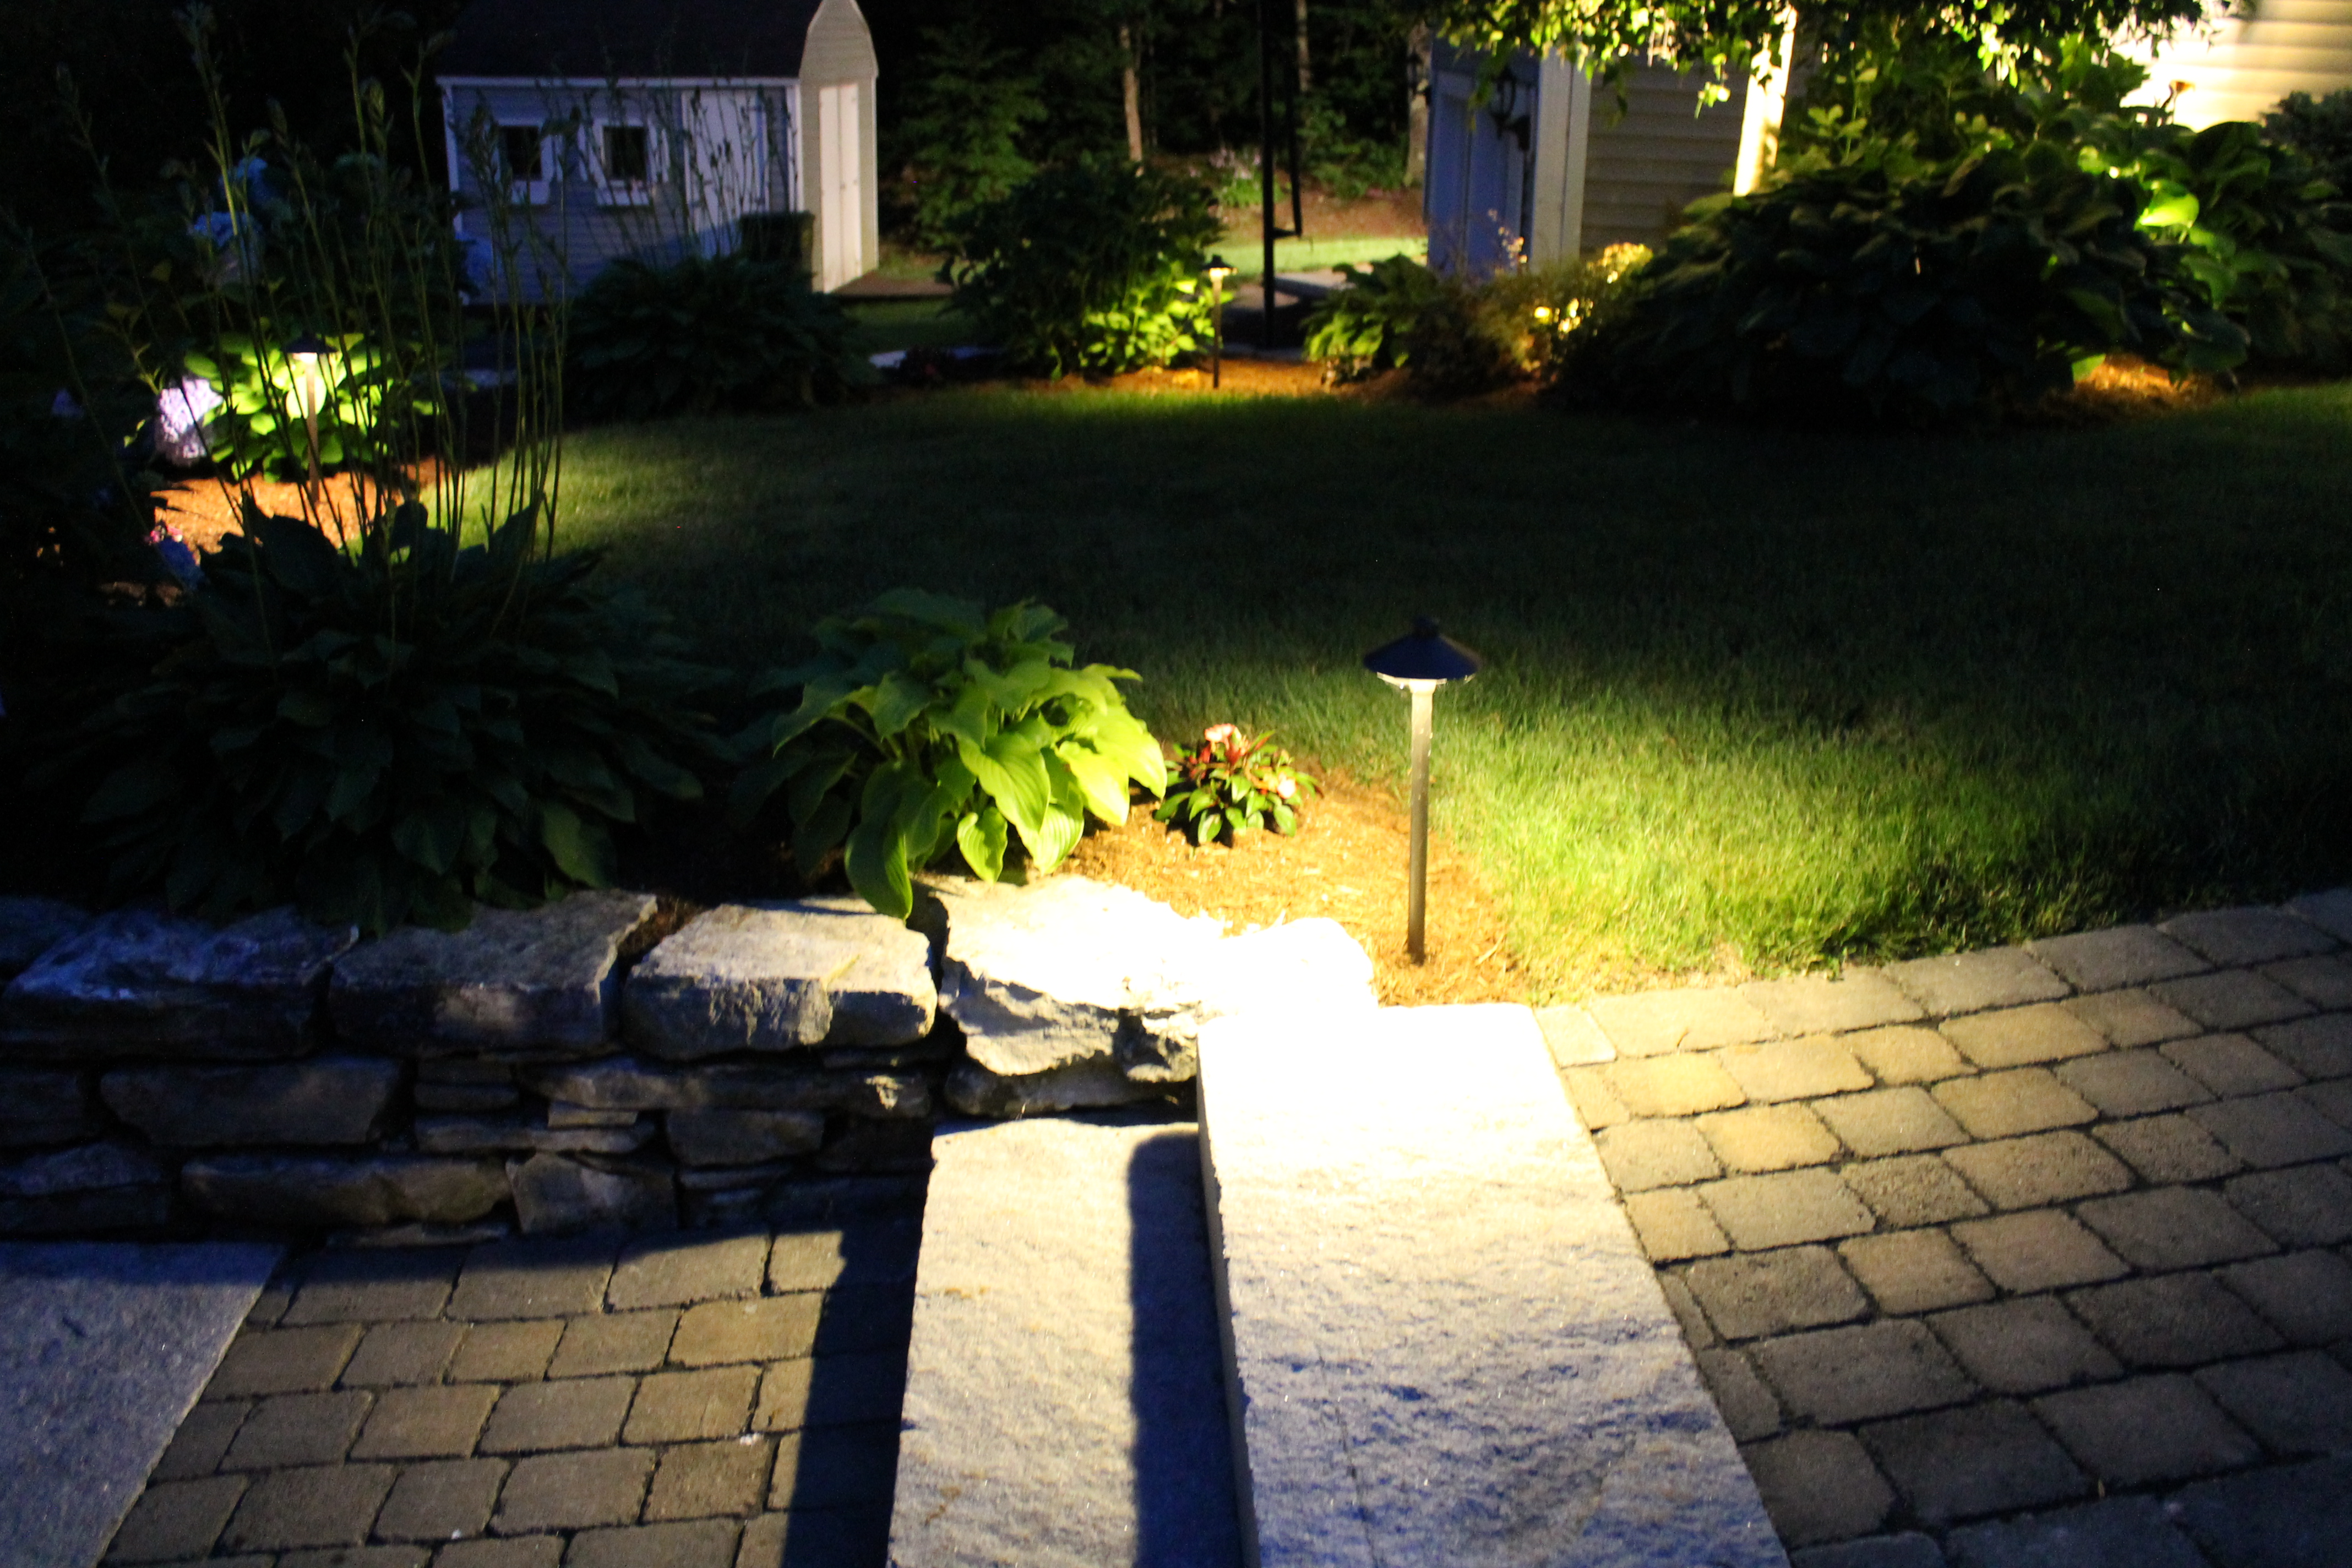 designs lighting homebnc best pathway brick backyard and lights for ideas simple solar